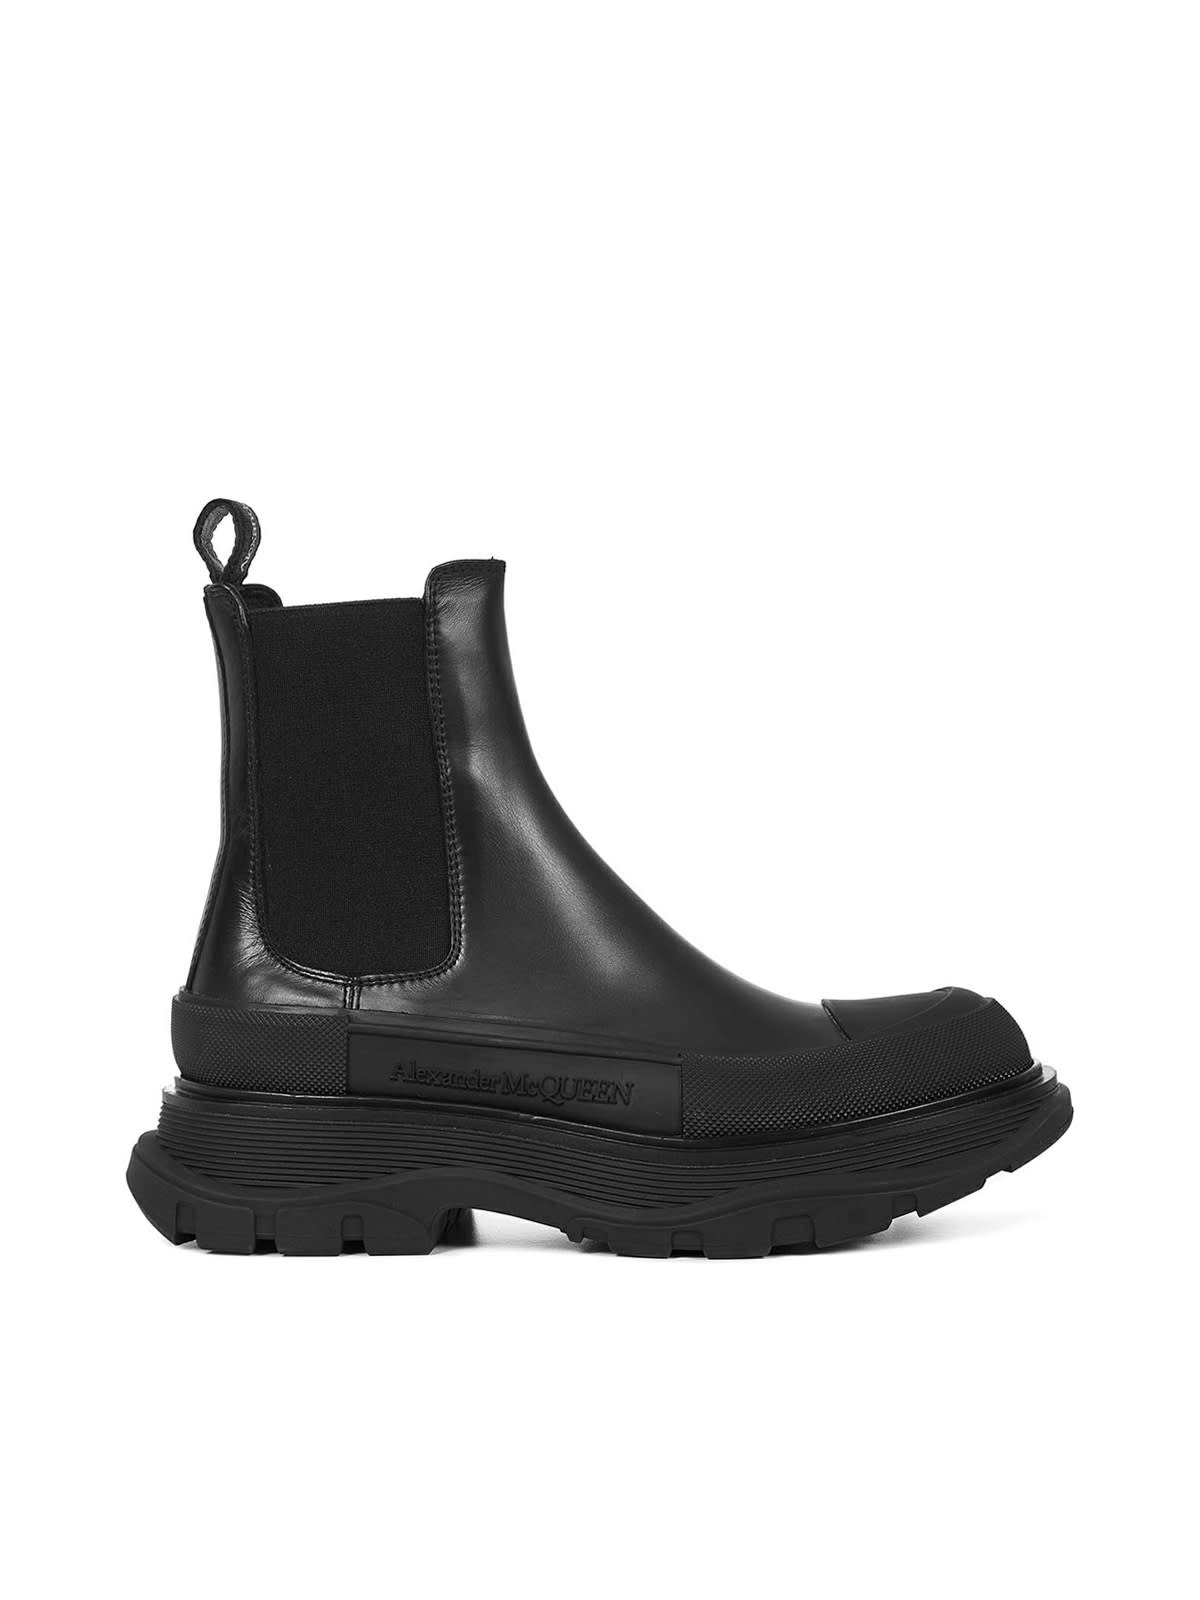 Buy Alexander McQueen Boot Rubber Sole online, shop Alexander McQueen shoes with free shipping